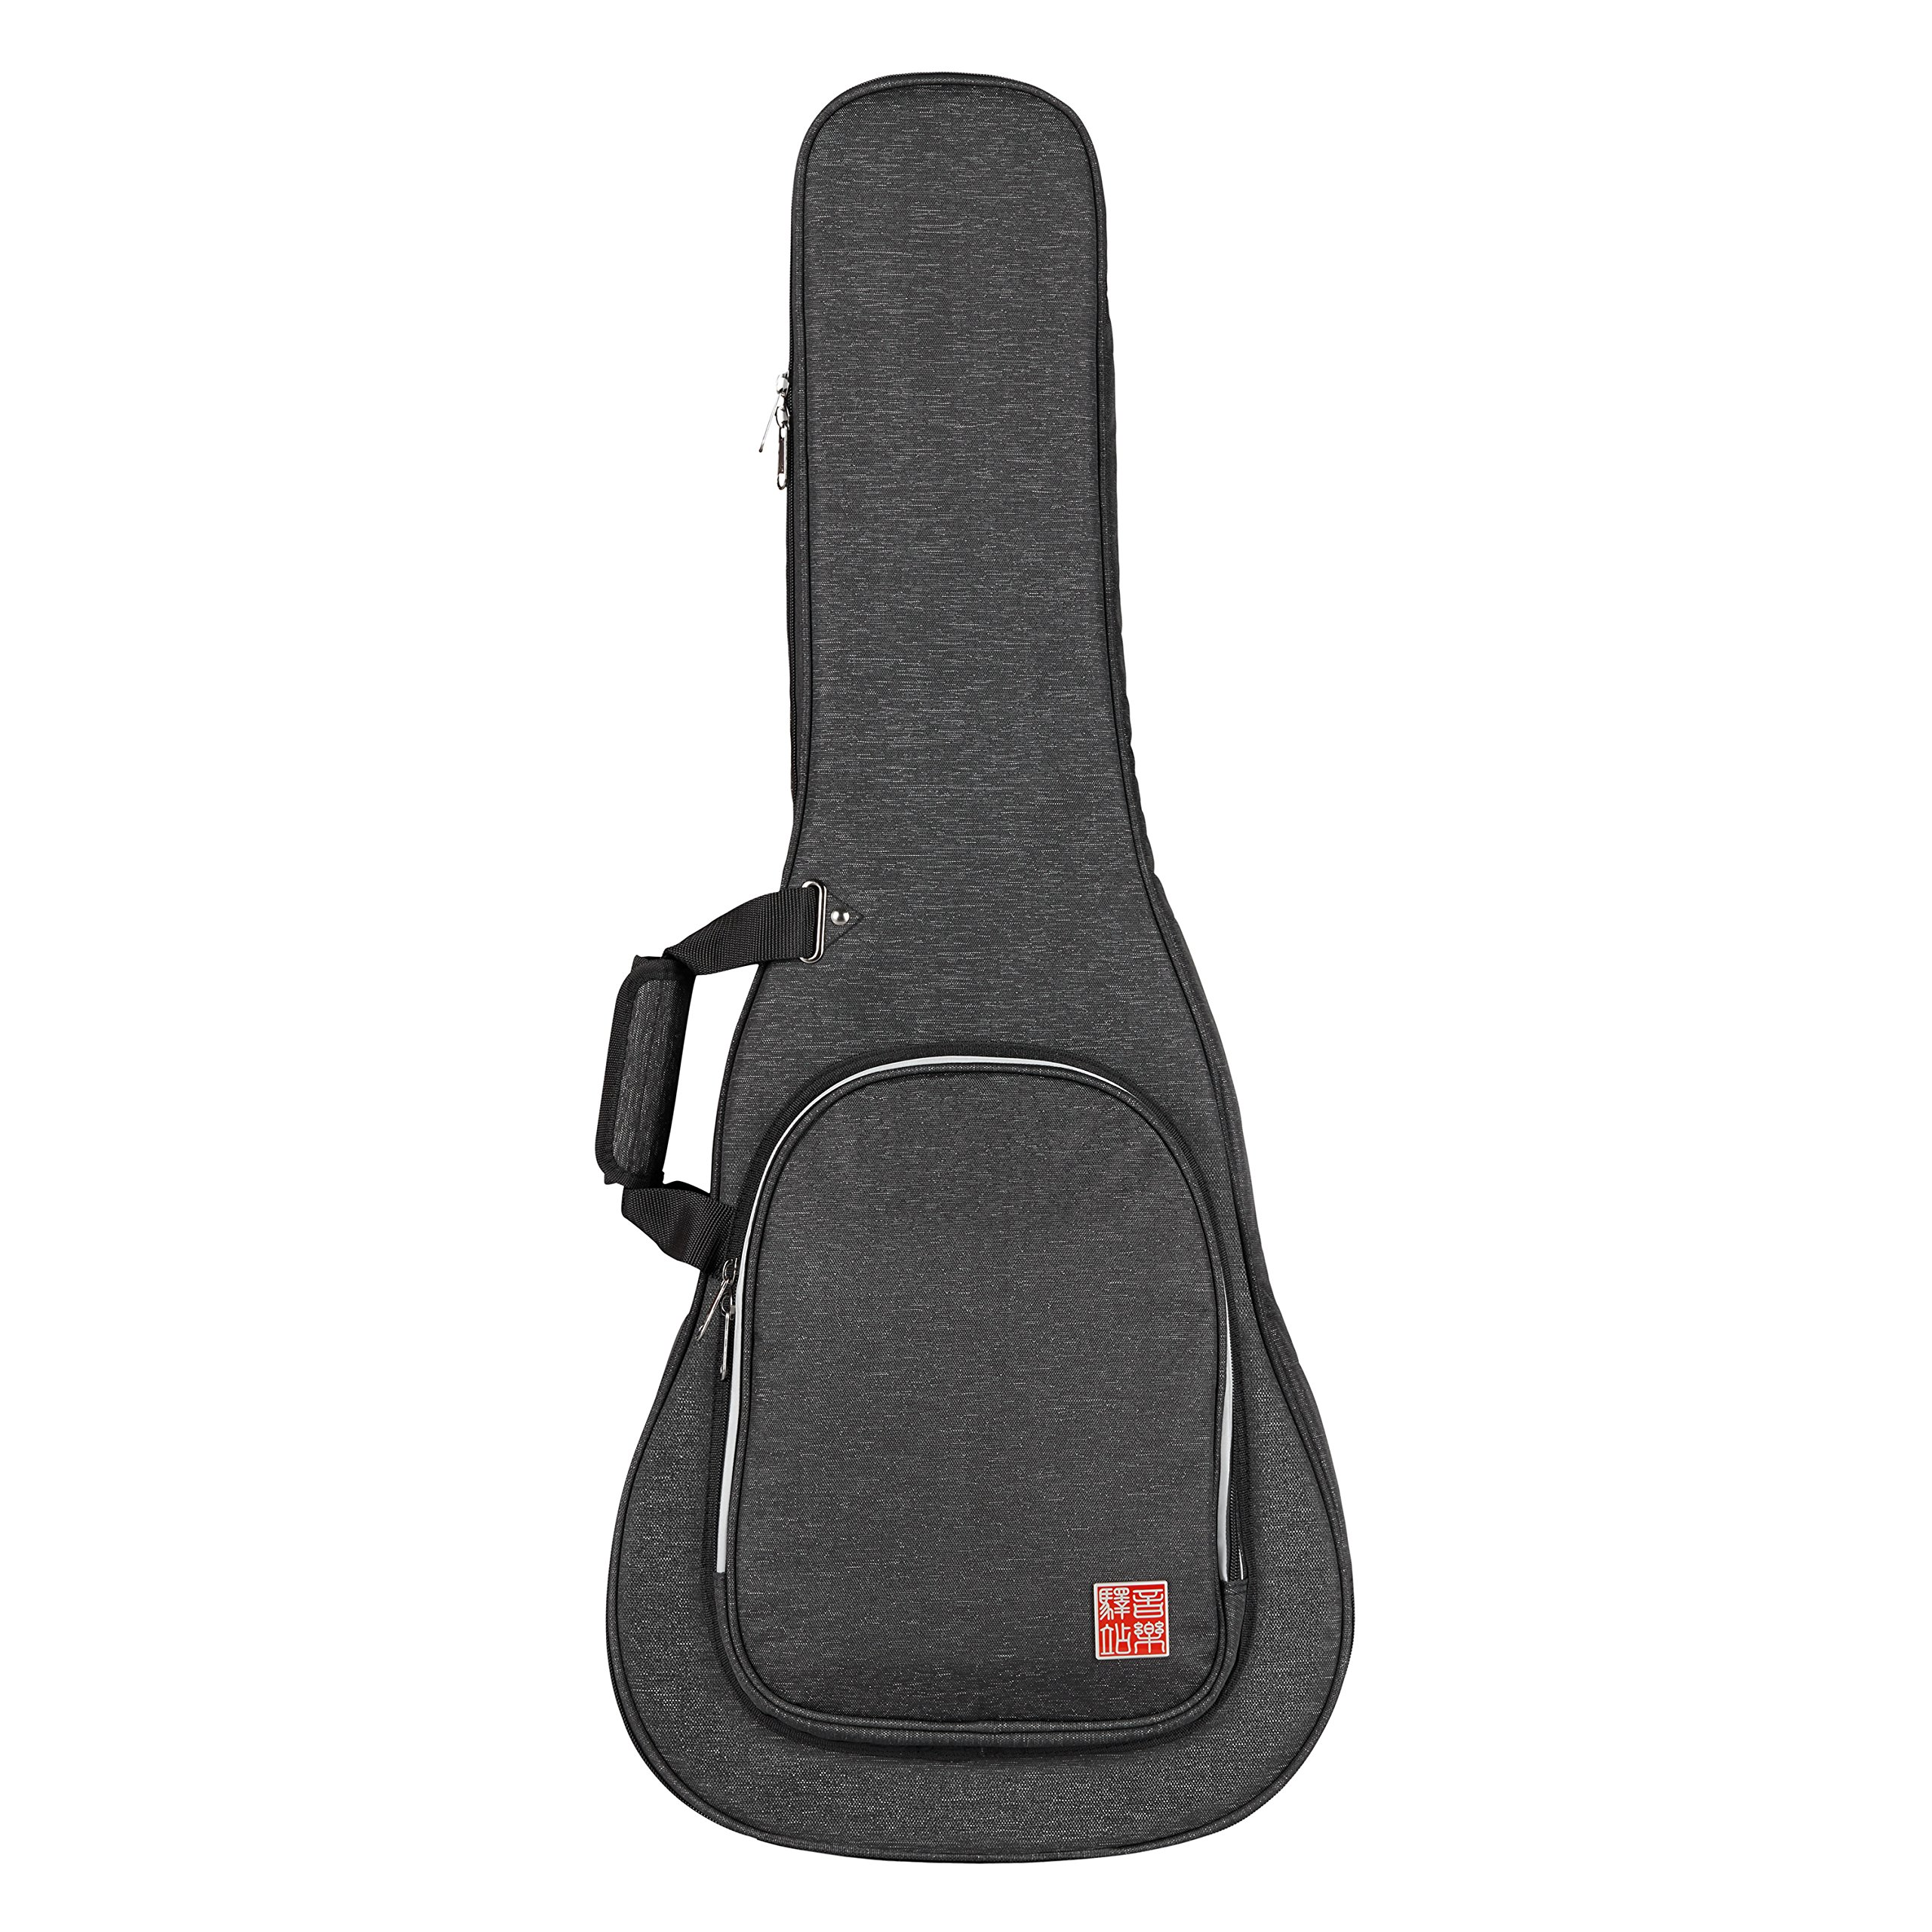 Music Area RB20 Acoustic Guitar Gig Bag Waterproof with 20mm cushion protection - Black